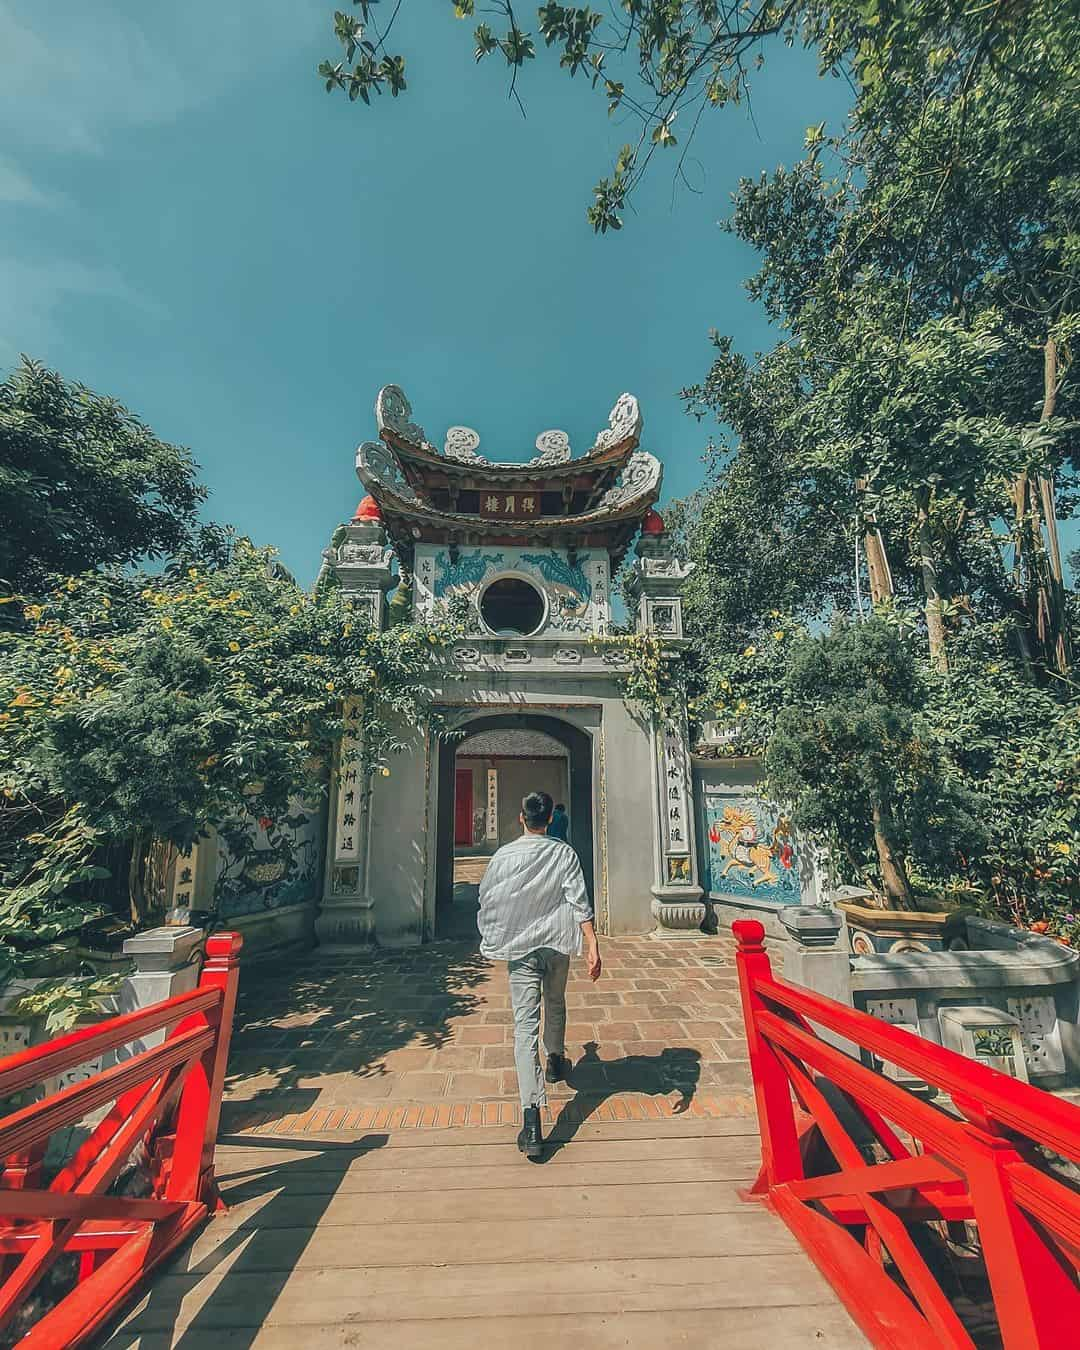 Highlights of Ngoc Son temple